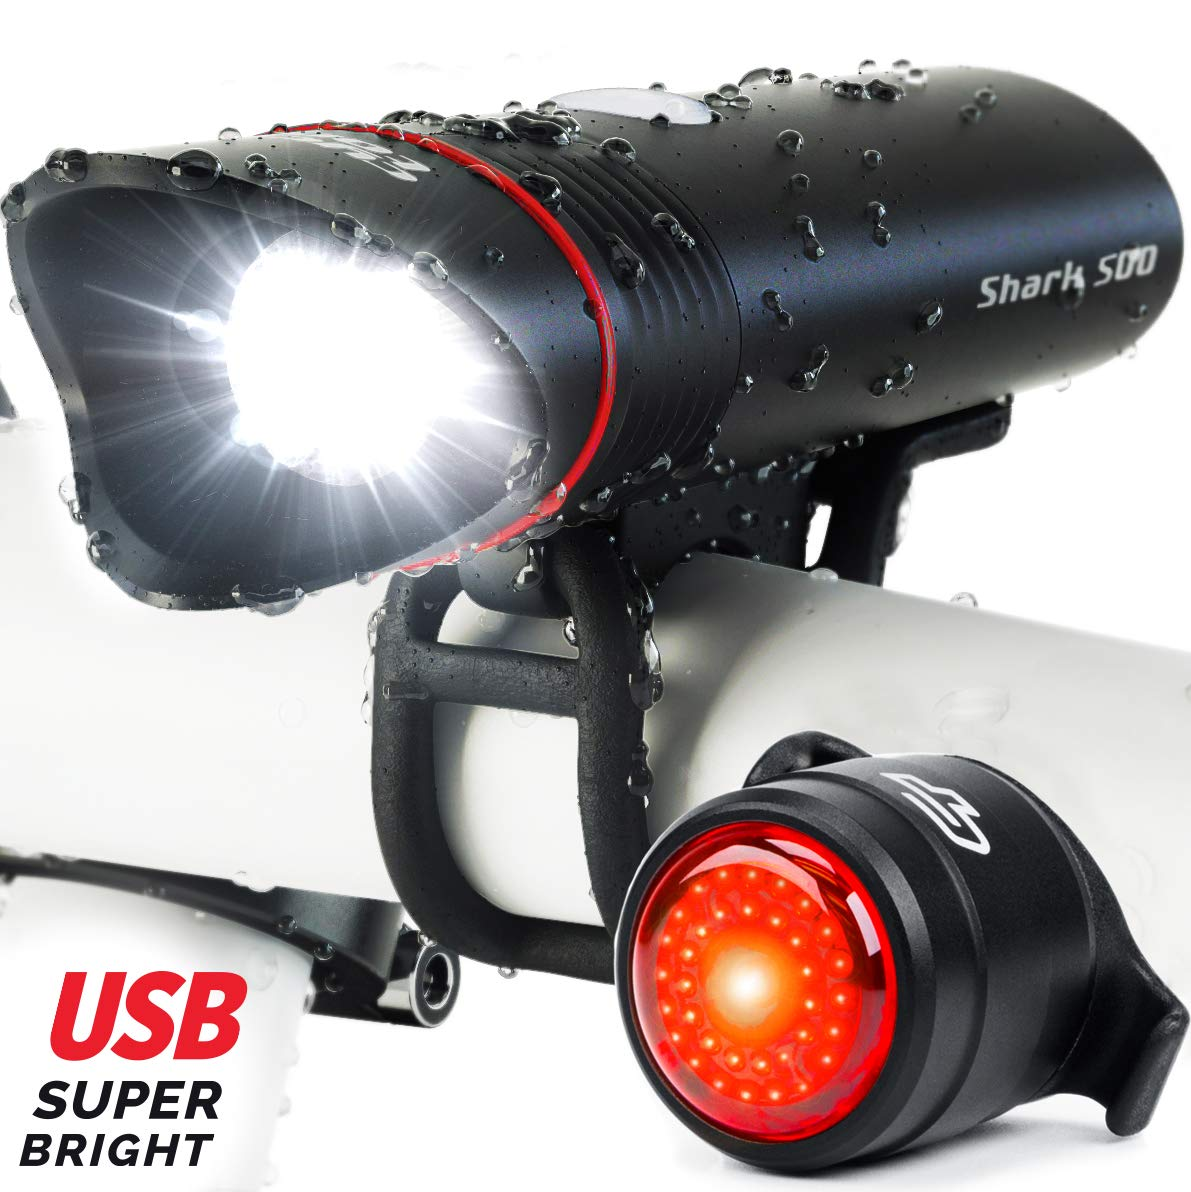 TTKY Bike Light Set,1200 Lumens USB Rechargeable Bicycle Lights,6 Modes 4000mAh Waterproof LED Headlight Mountain Bike Light,Safety /& Easy Mount Cycling Front Light /& Rear Light Fits All Bicycles,Road